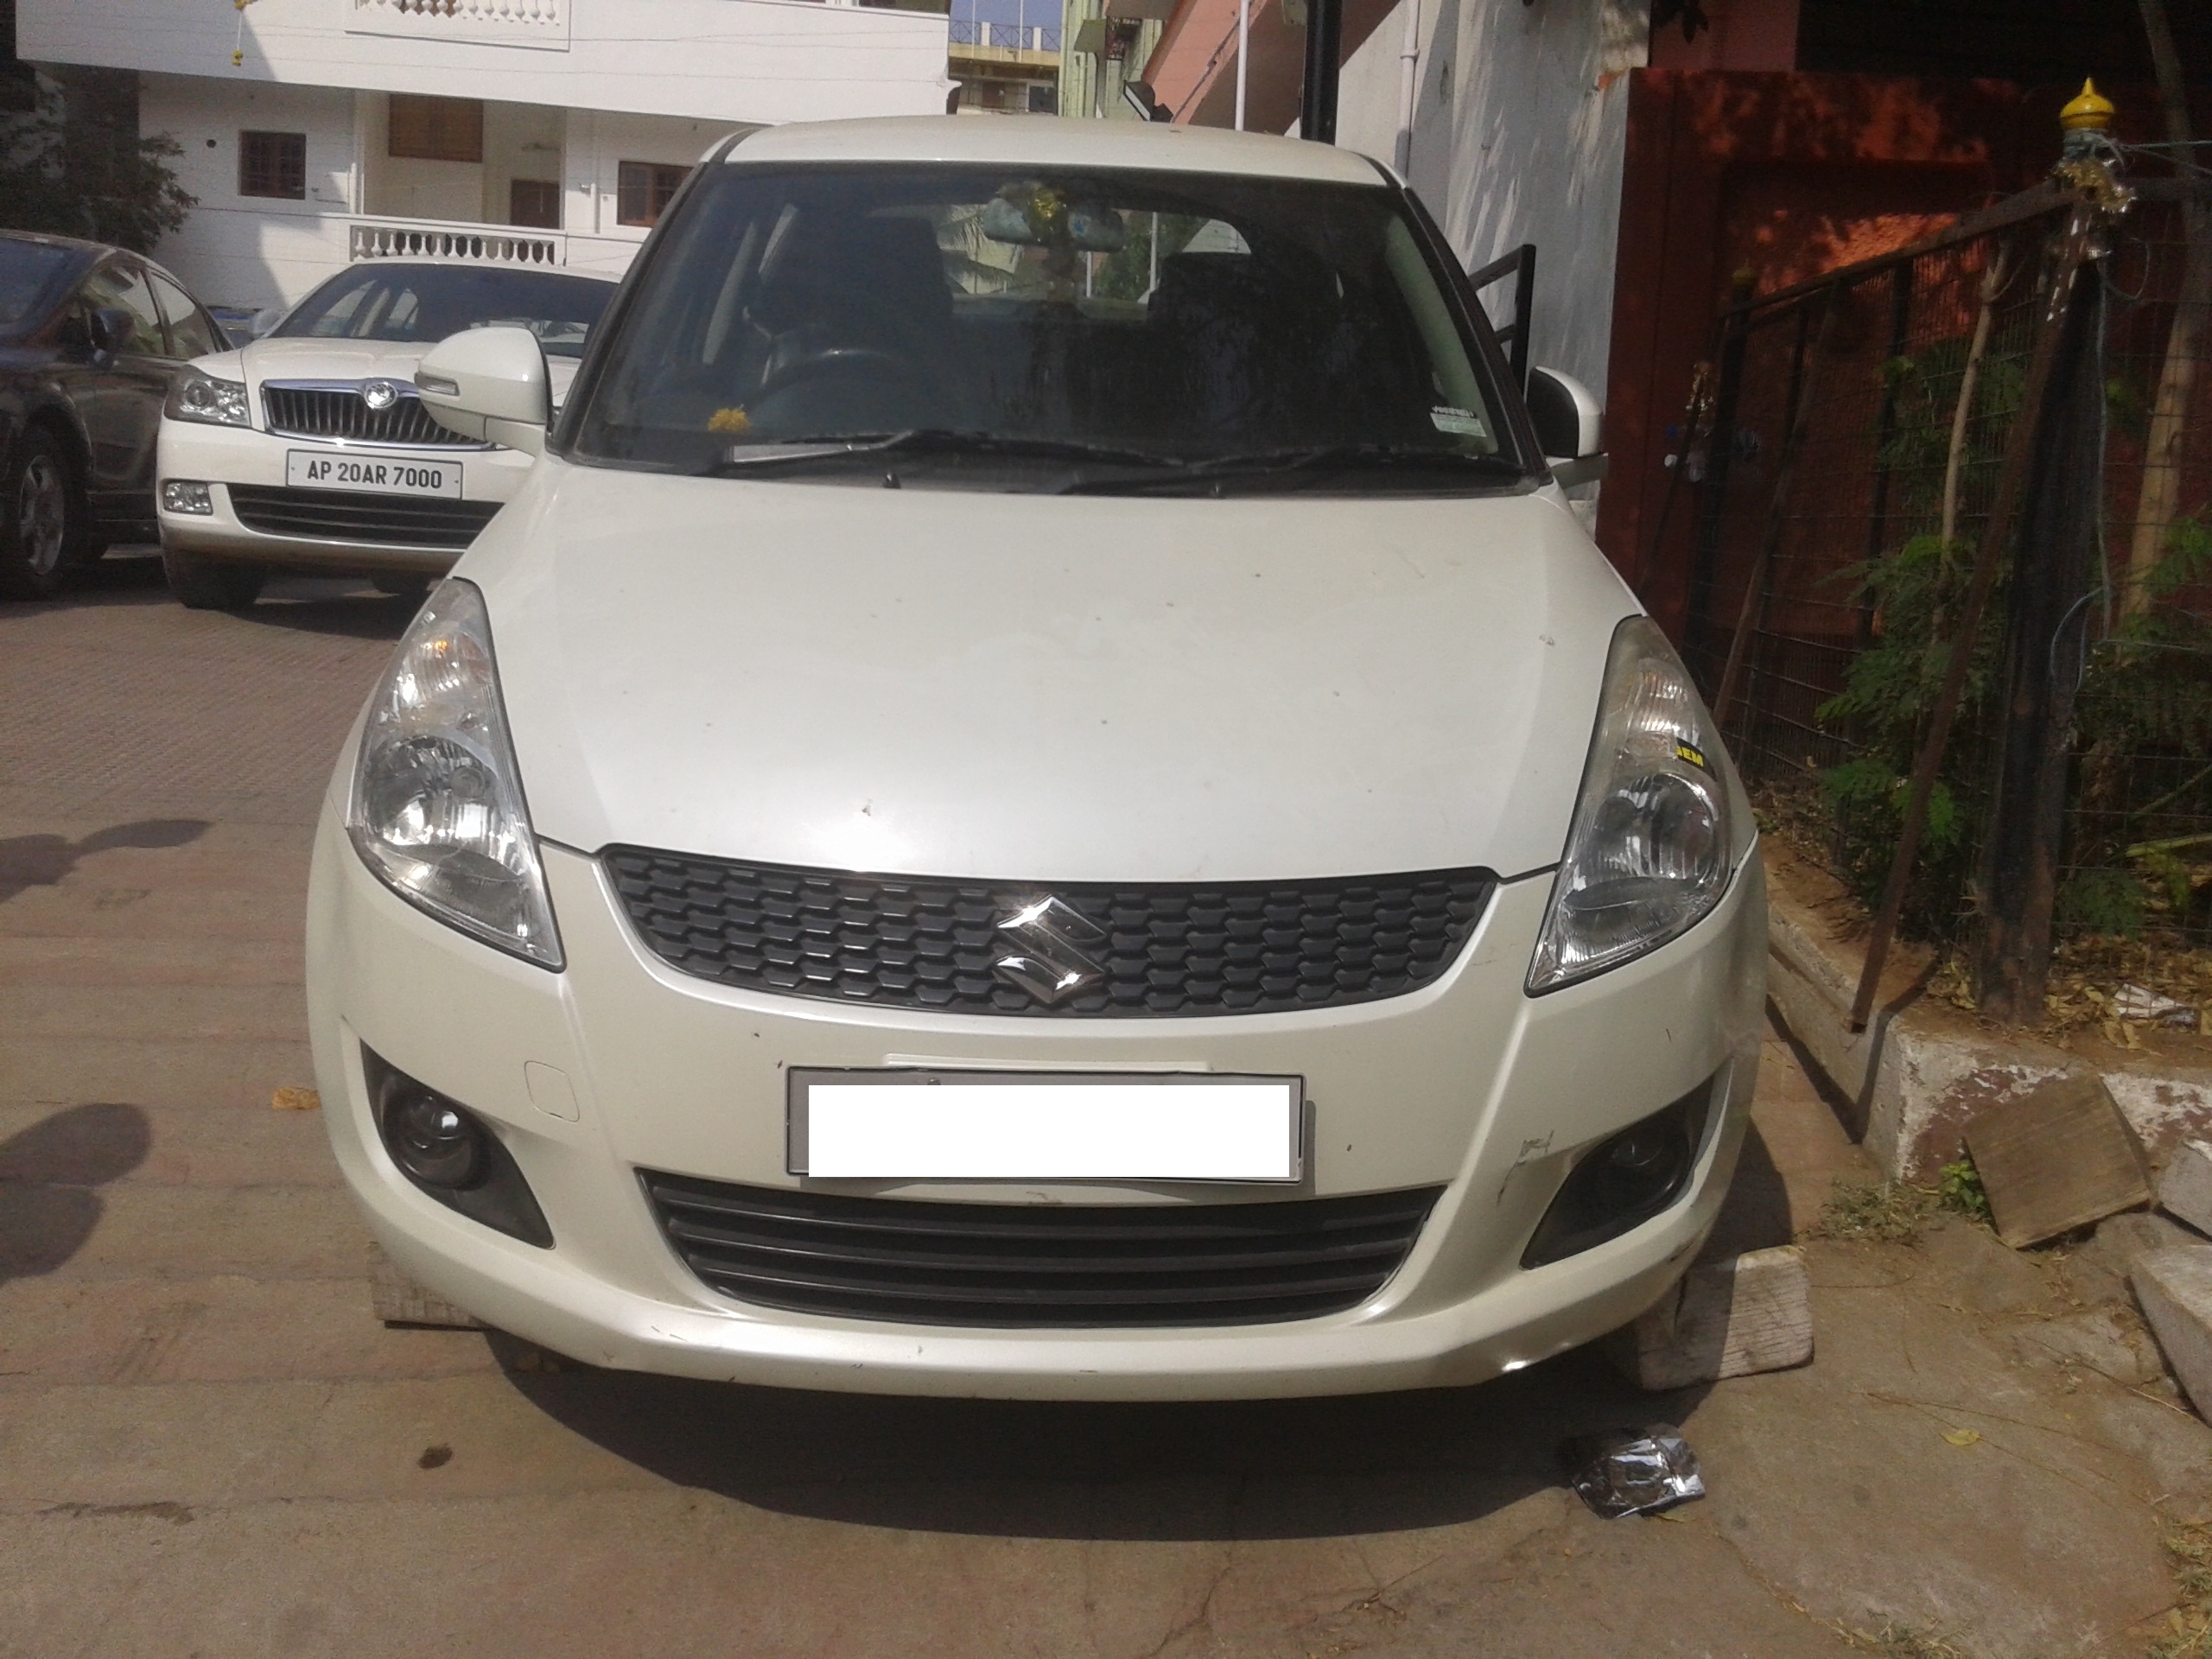 MARUTI SWIFT ZDI BSIV;MODEL 03/2012, KM 66928, COLOUR WHITE , FUEL DIESEL, VERY NICE FEATURES, PERFET CONDITION AND FULLY SHOW ROOM SERVICE. - by Nani Used Cars, Hyderabad